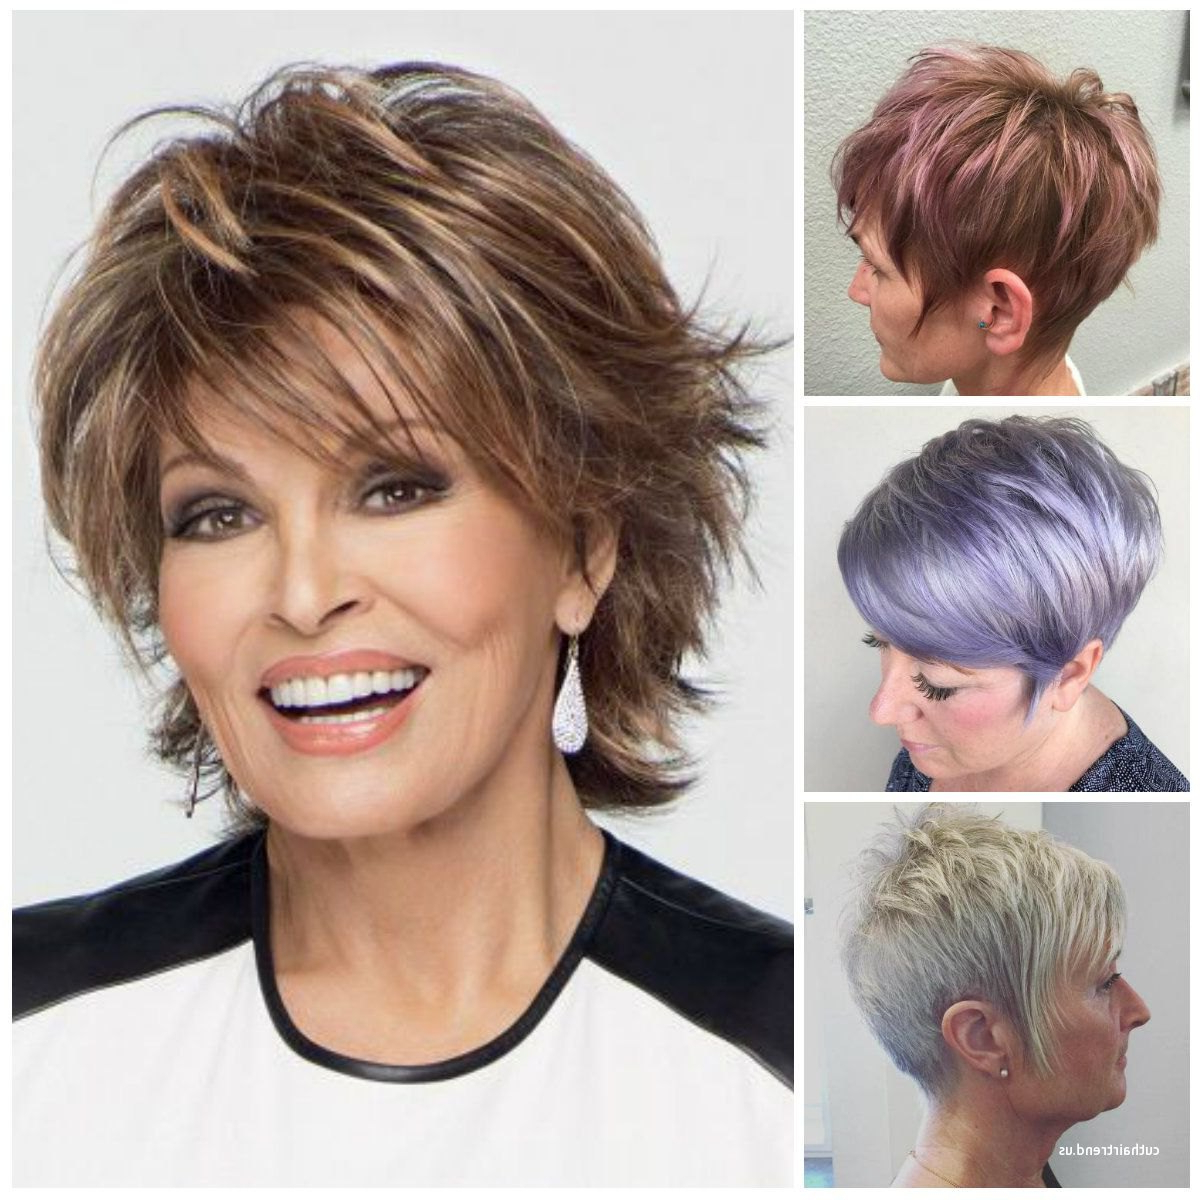 Luxury Mature Short Hairstyles Within Mature Short Layered Haircuts (Gallery 3 of 20)